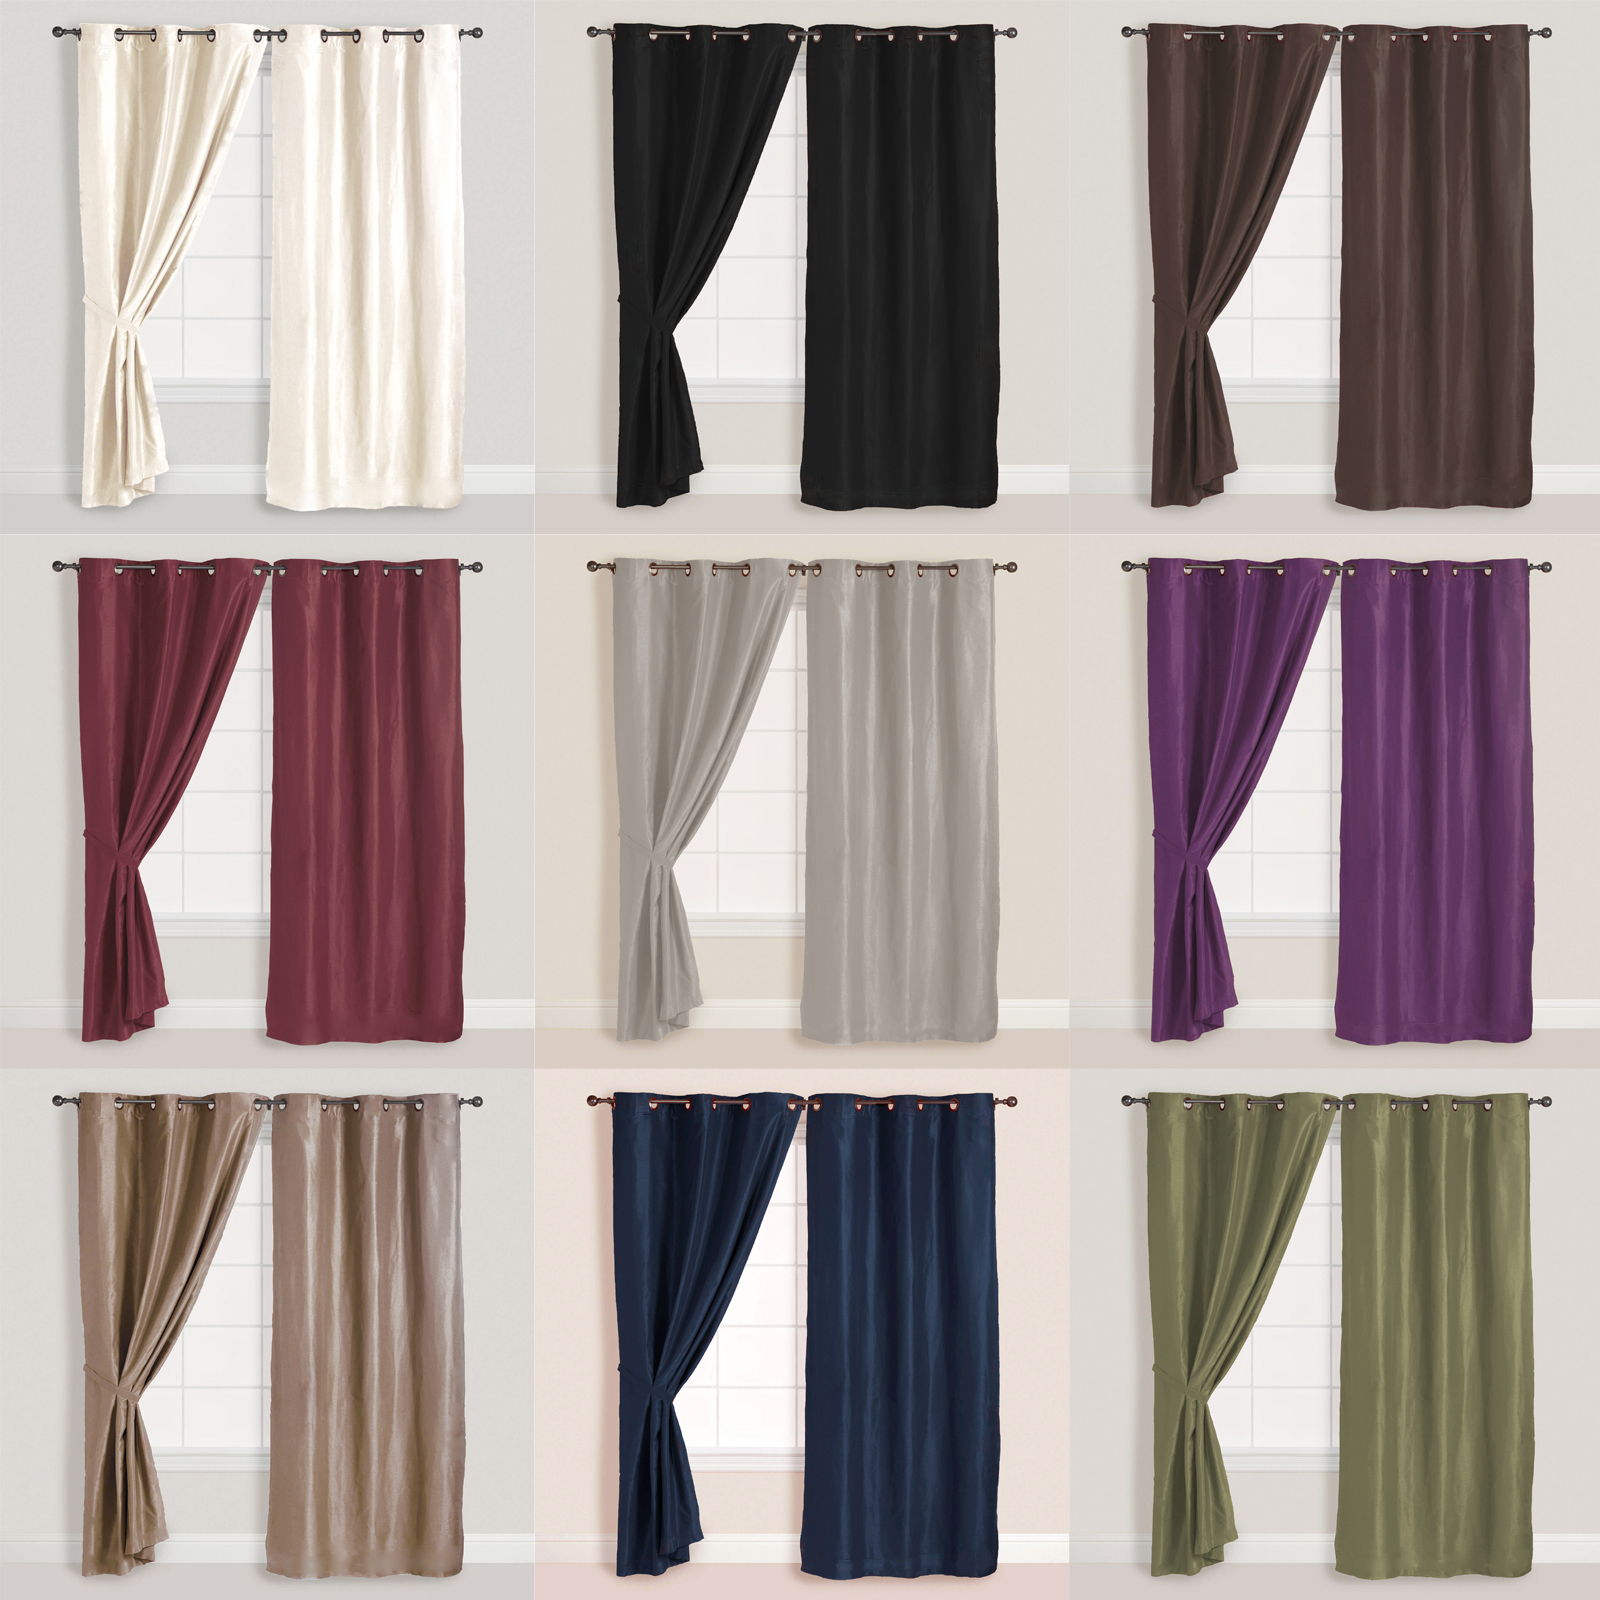 2x Panels Pair Faux Suede Metal Grommet Curtain Drape Set